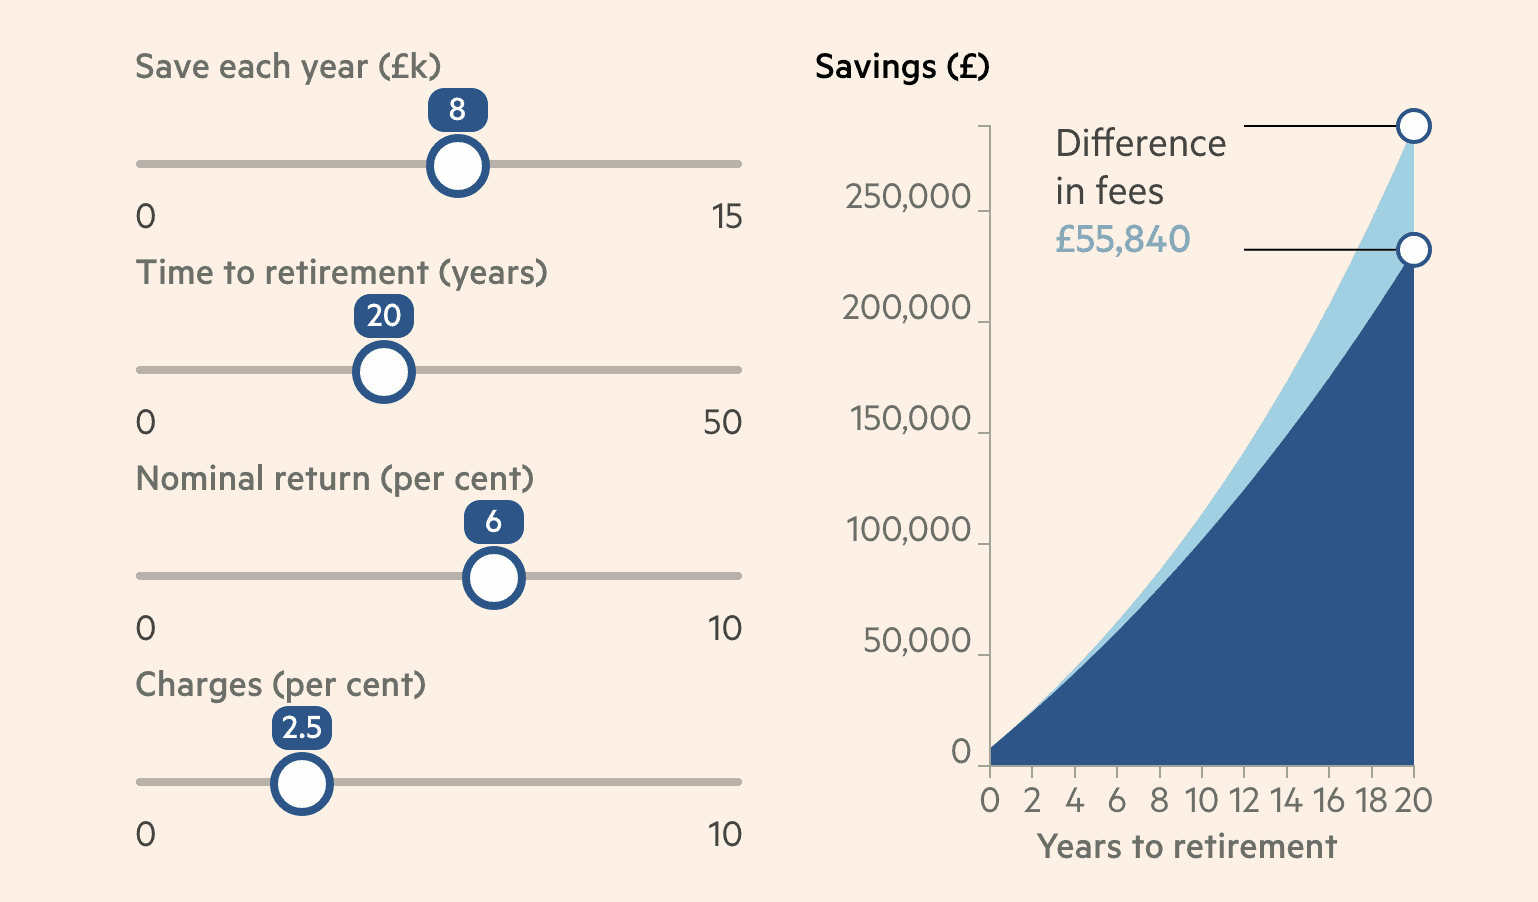 Impact of management fees on pension value